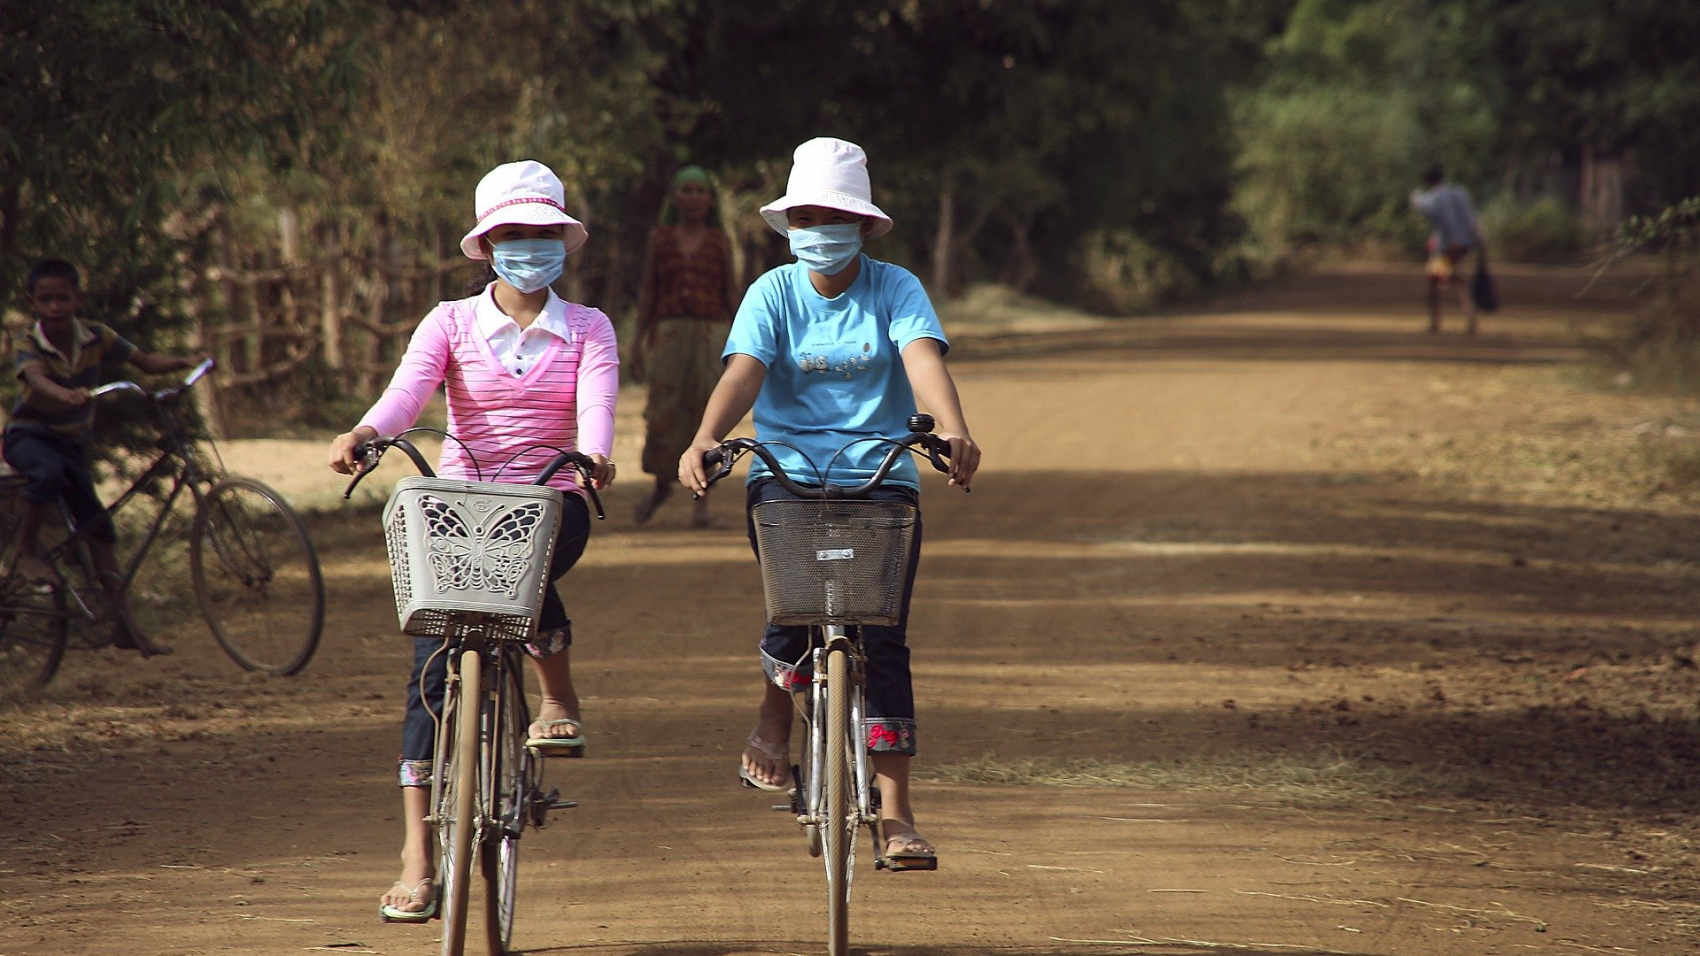 cycling in cambodia during corona virus